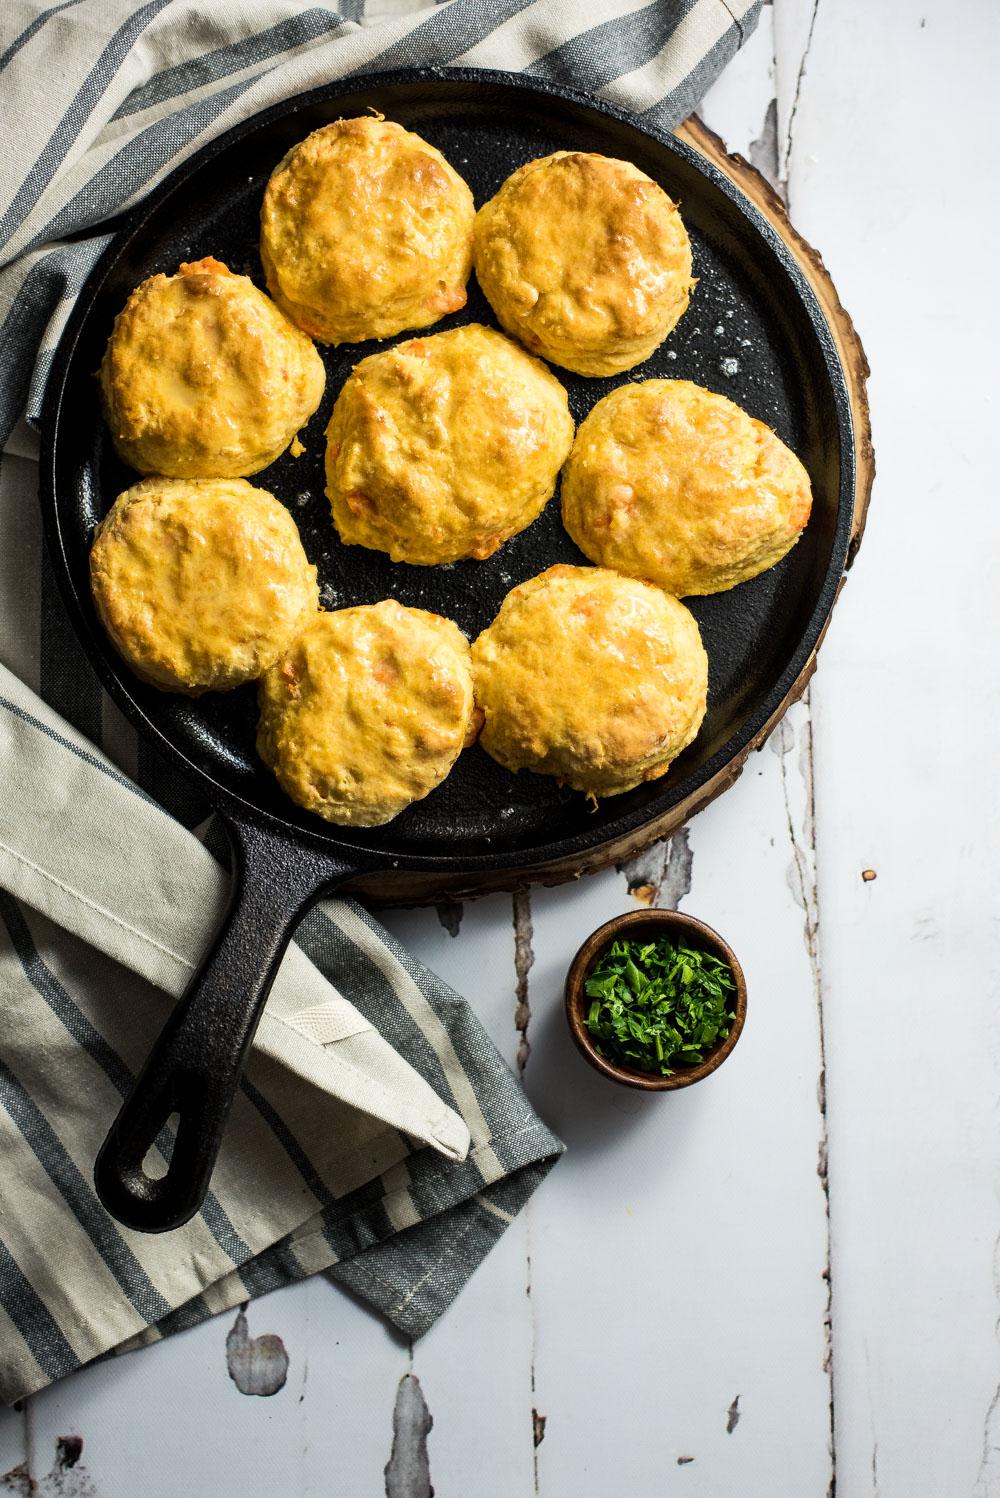 For breakfast, lunch, or dinner, these quick and simple sweet potato biscuits and gravy are a snap to whip up, super delicious, and insanely comforting!